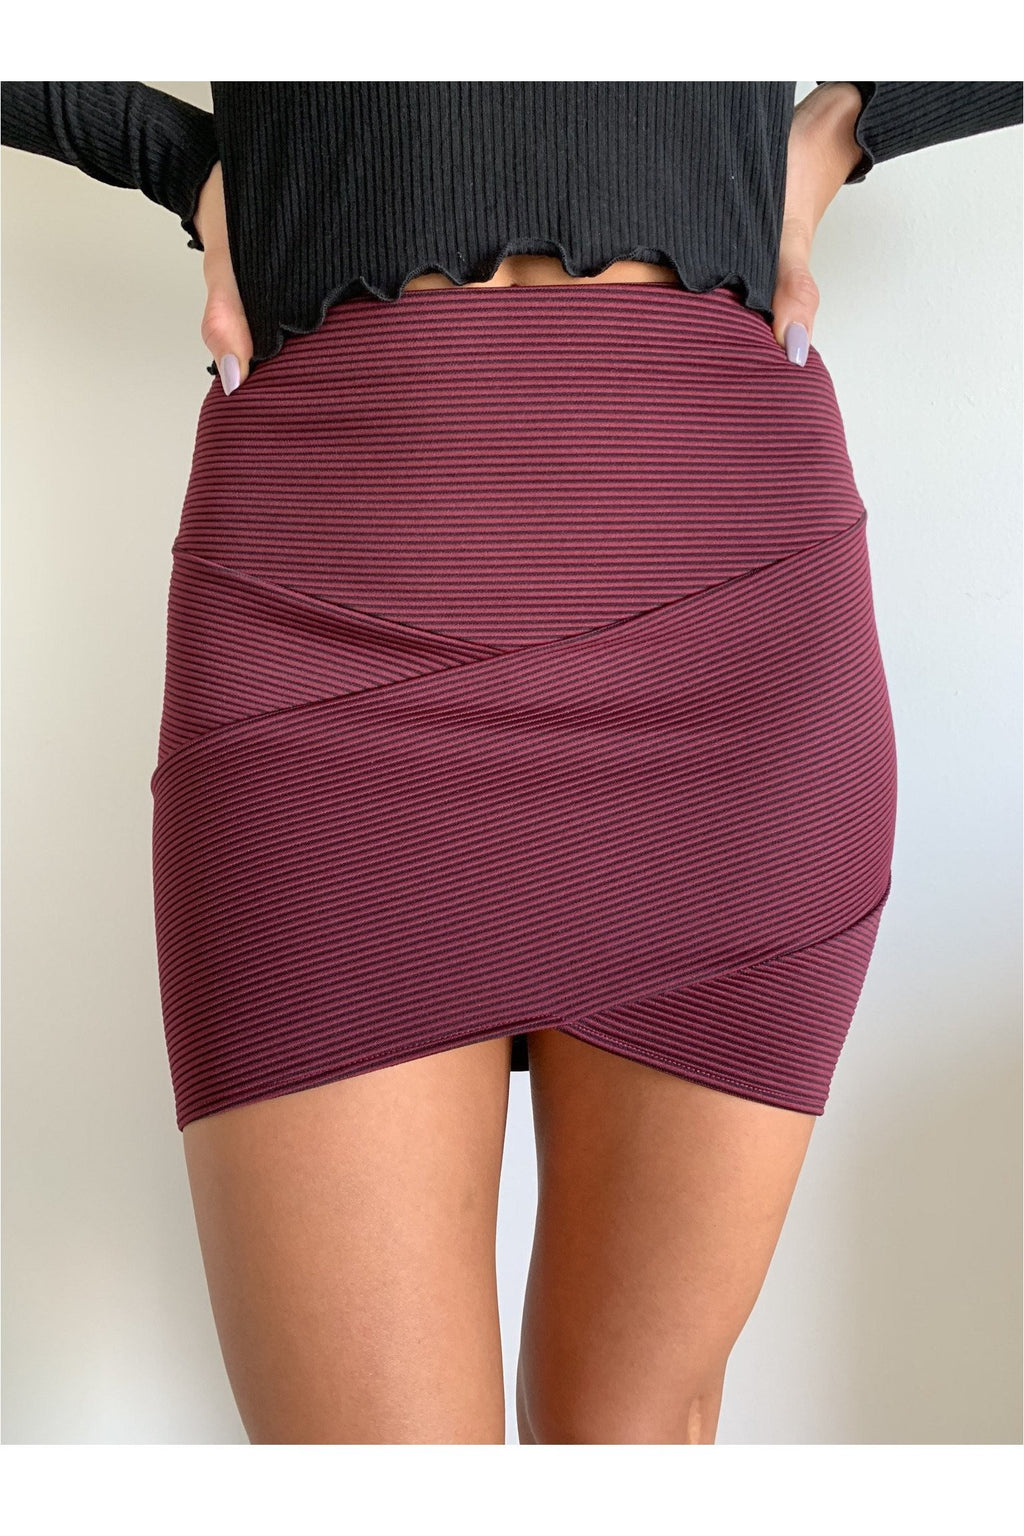 Garnet Bandage Mini Skirt